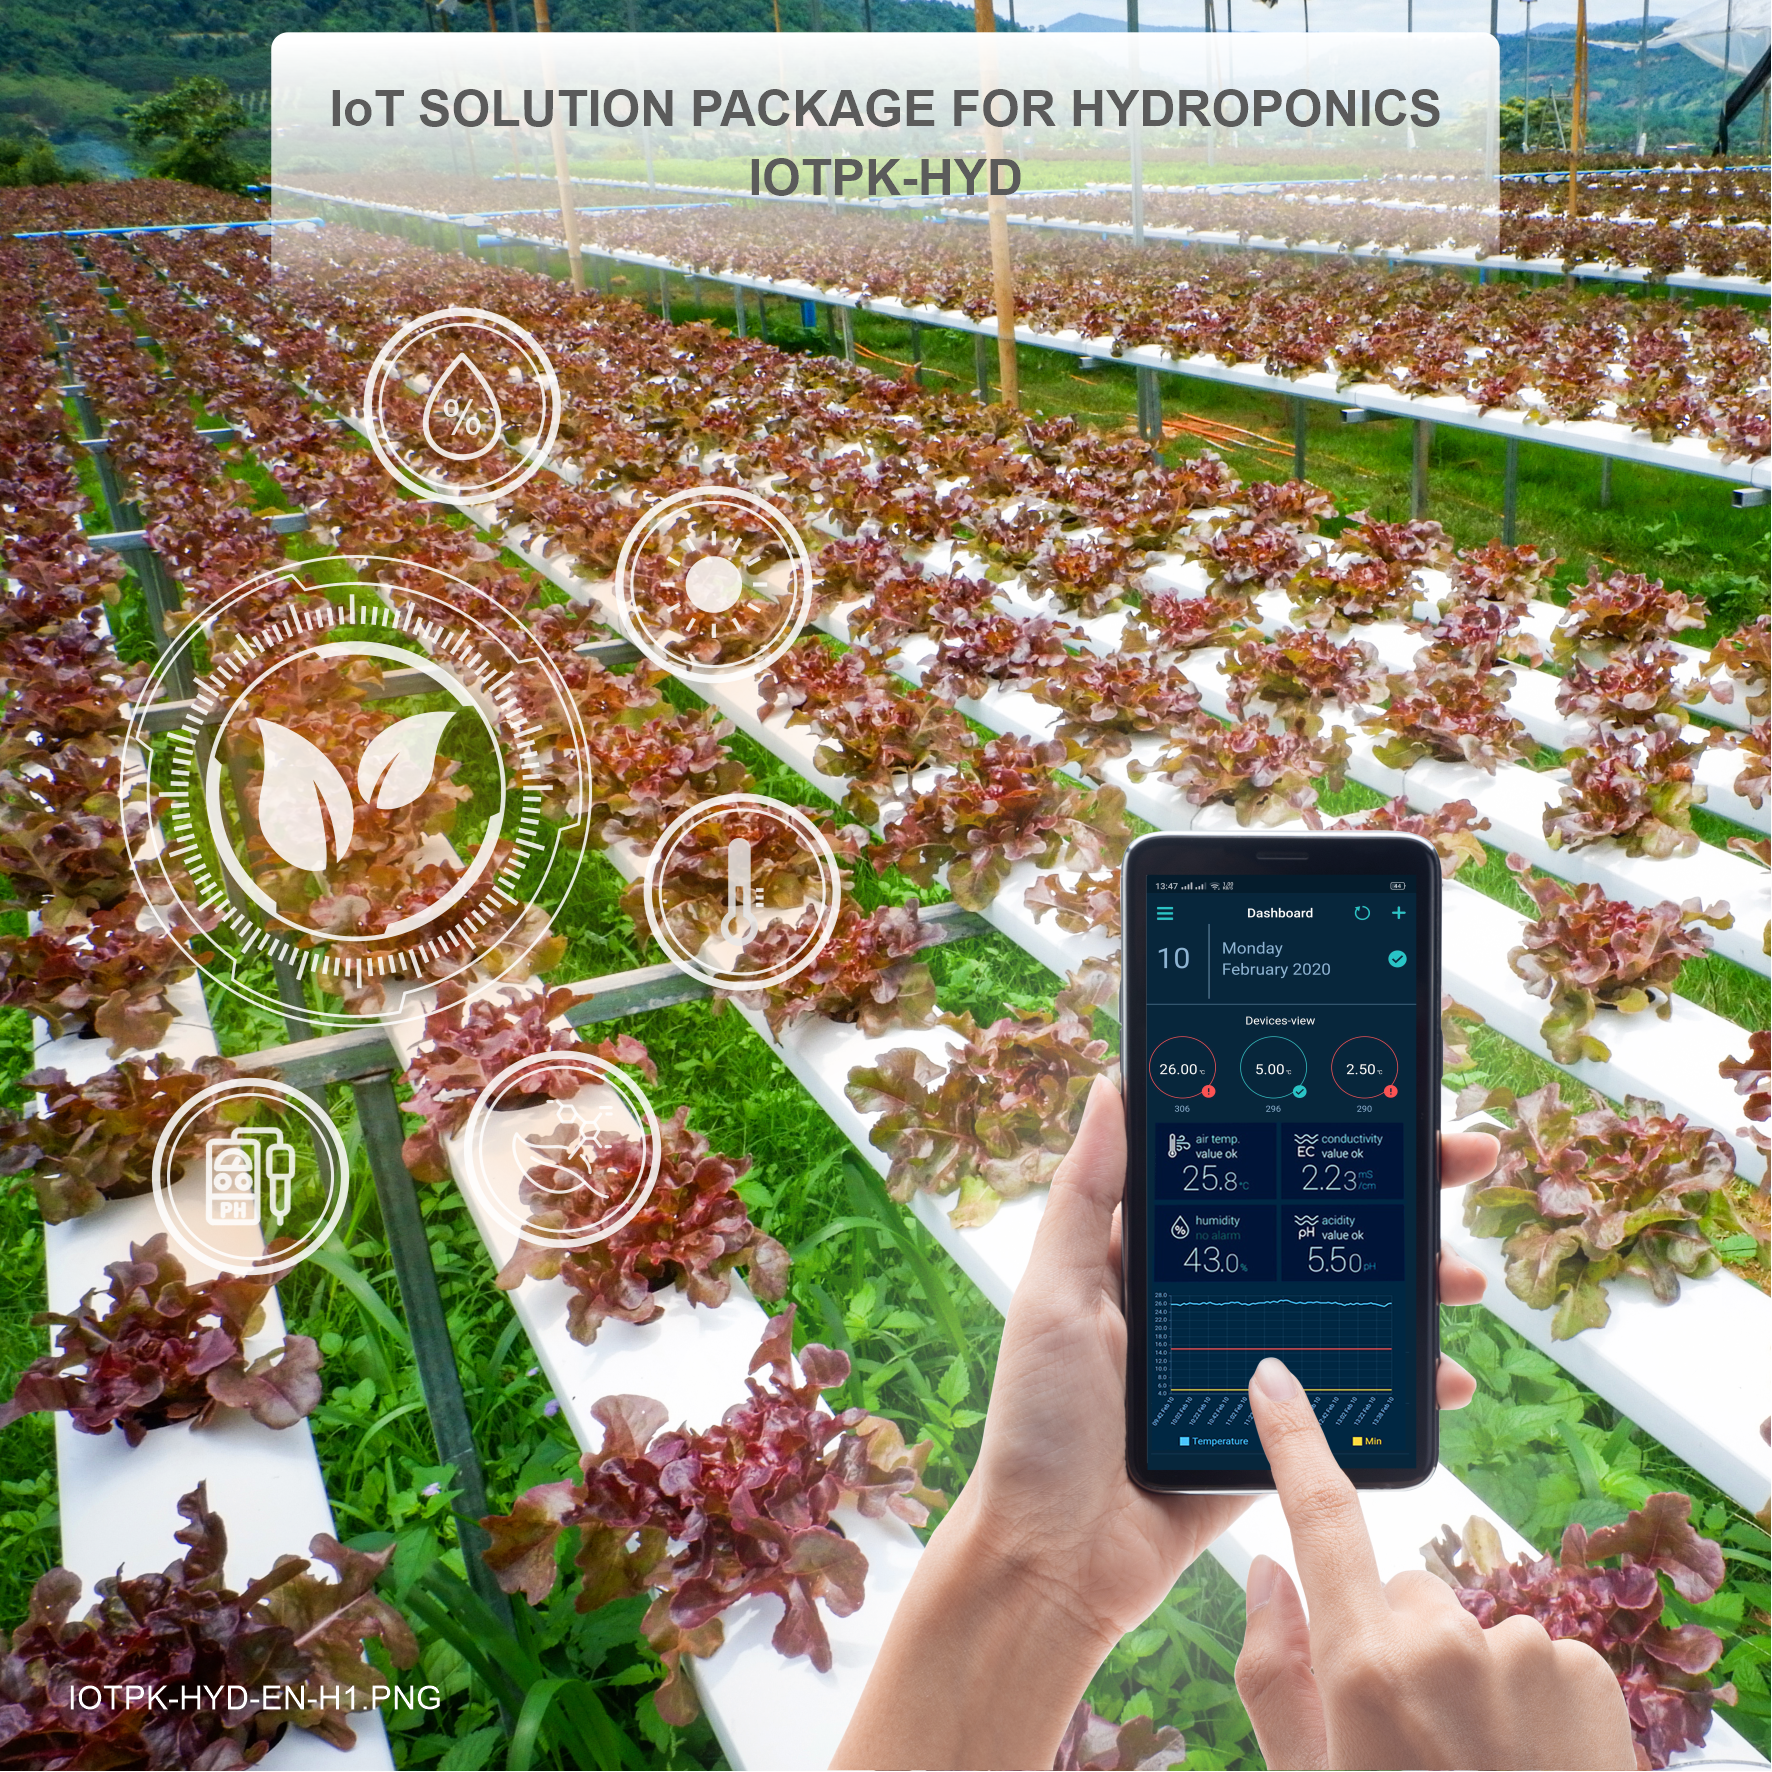 IoT SOLUTION PACKAGE FOR HYDROPONICS SYSTEM